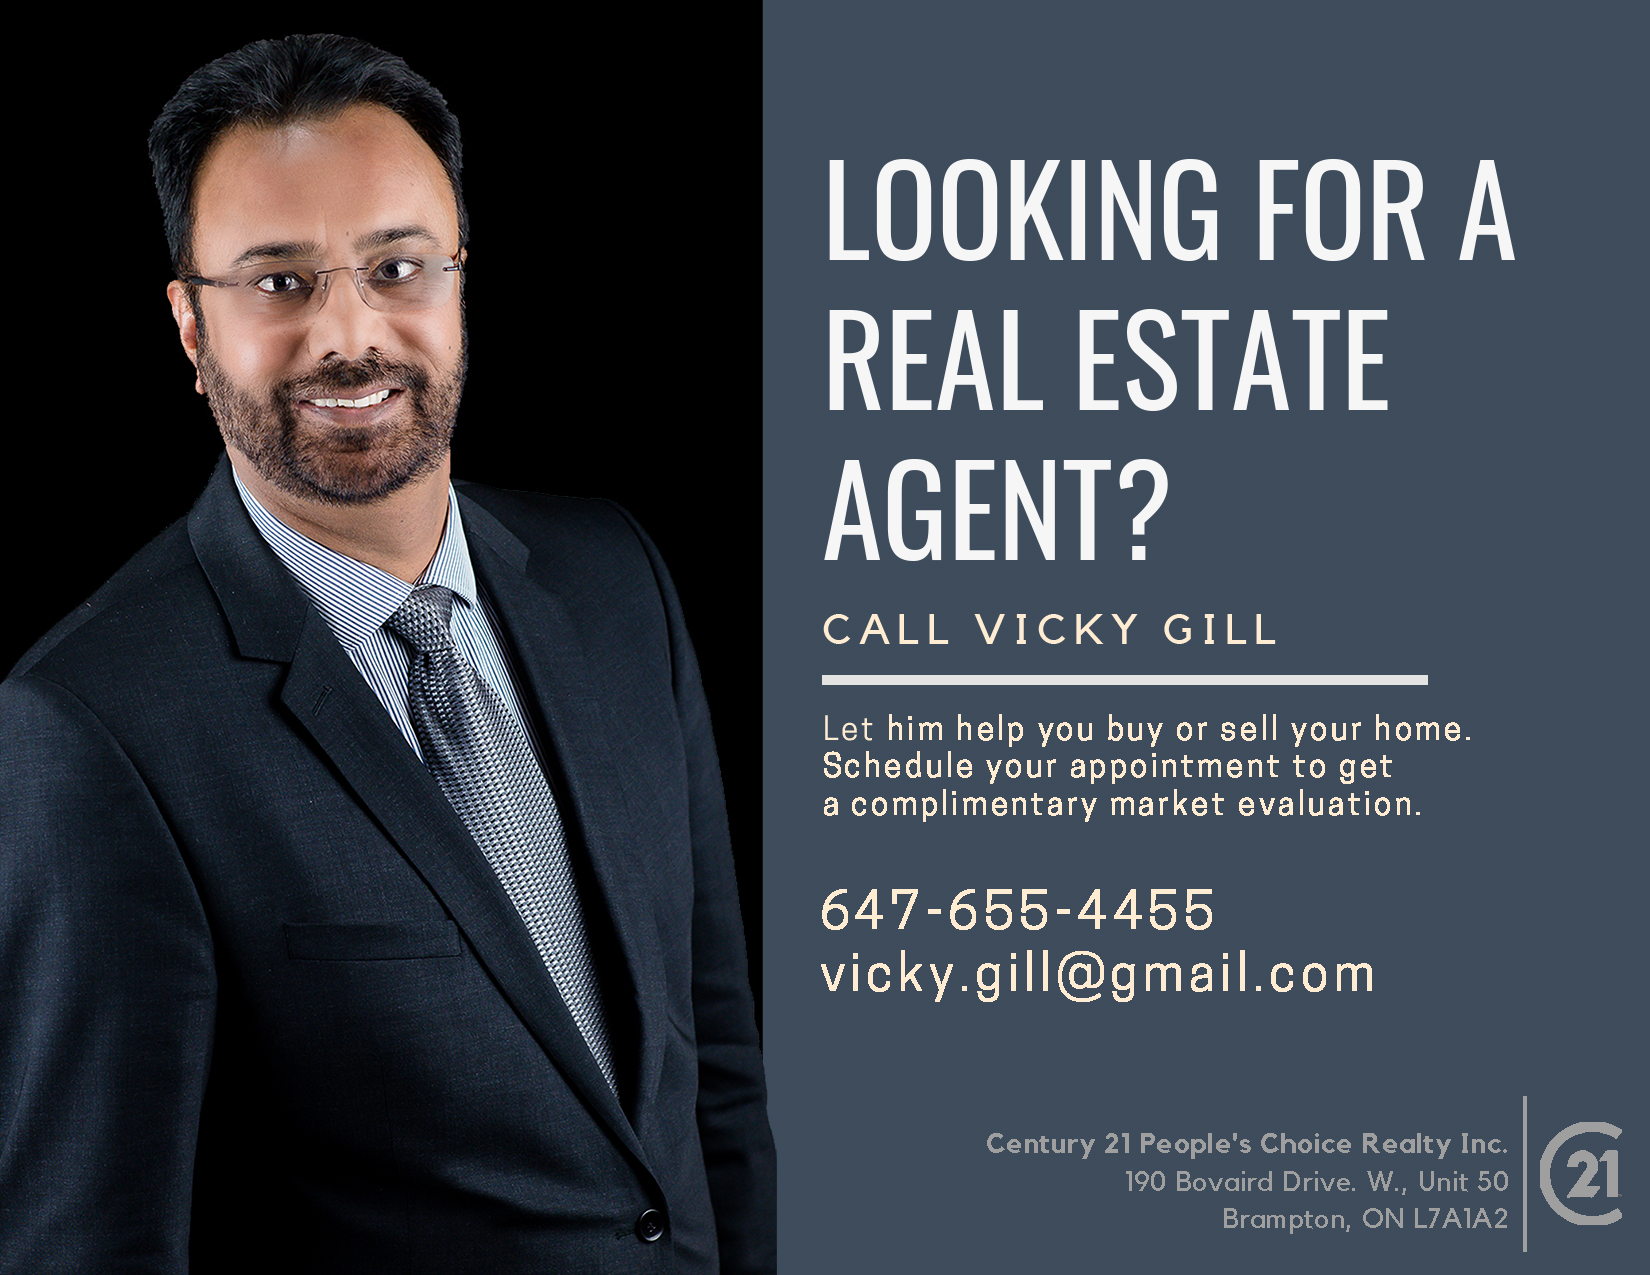 Looking for Real Estate Agent